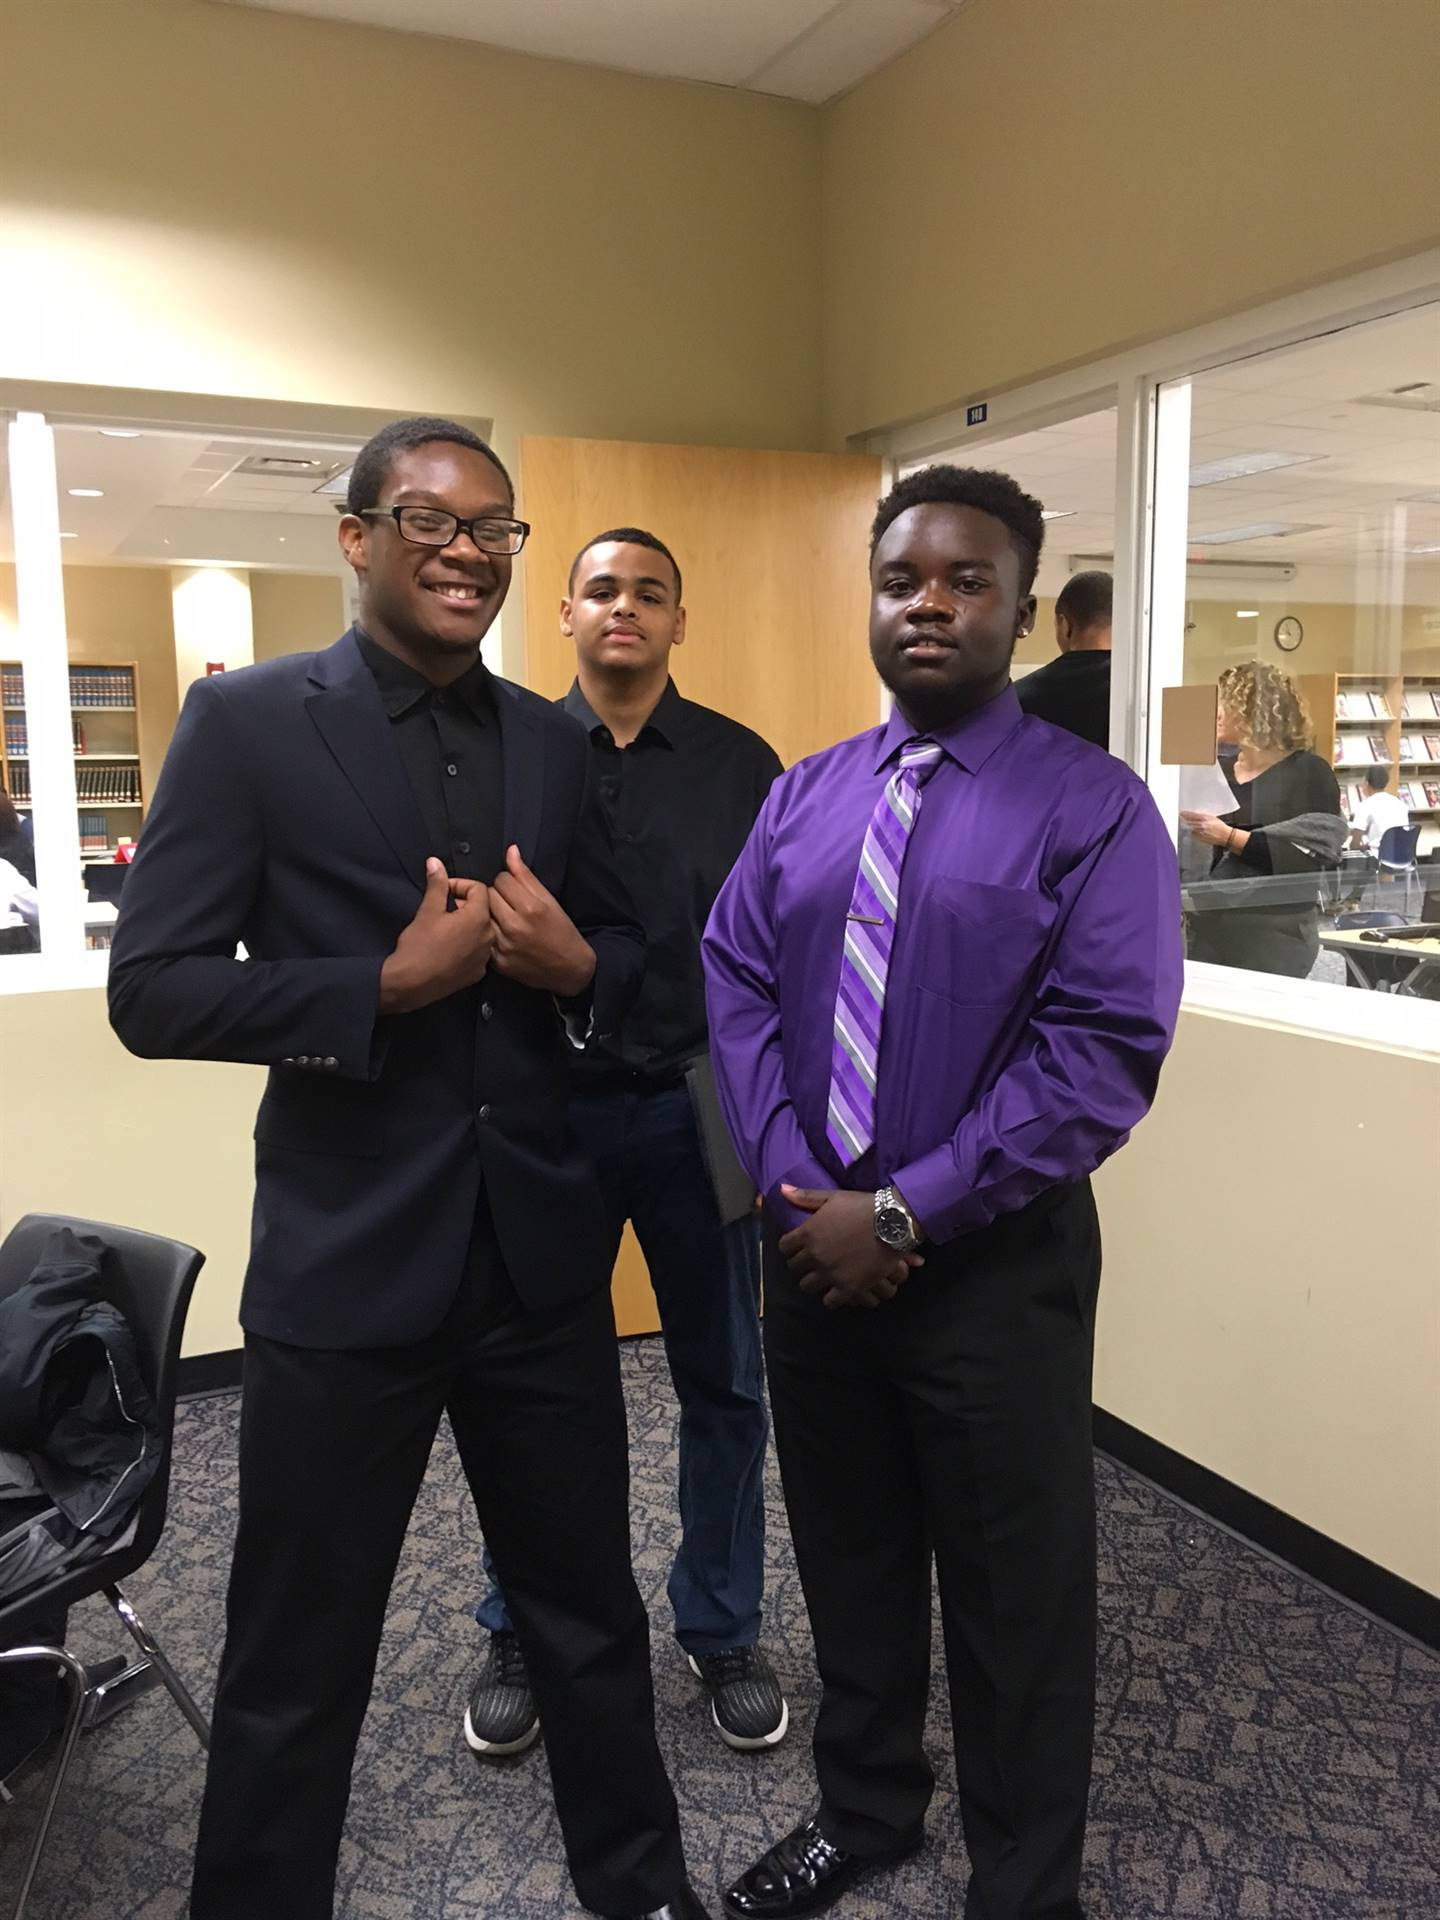 students dressed in suits and ties for mock interviews